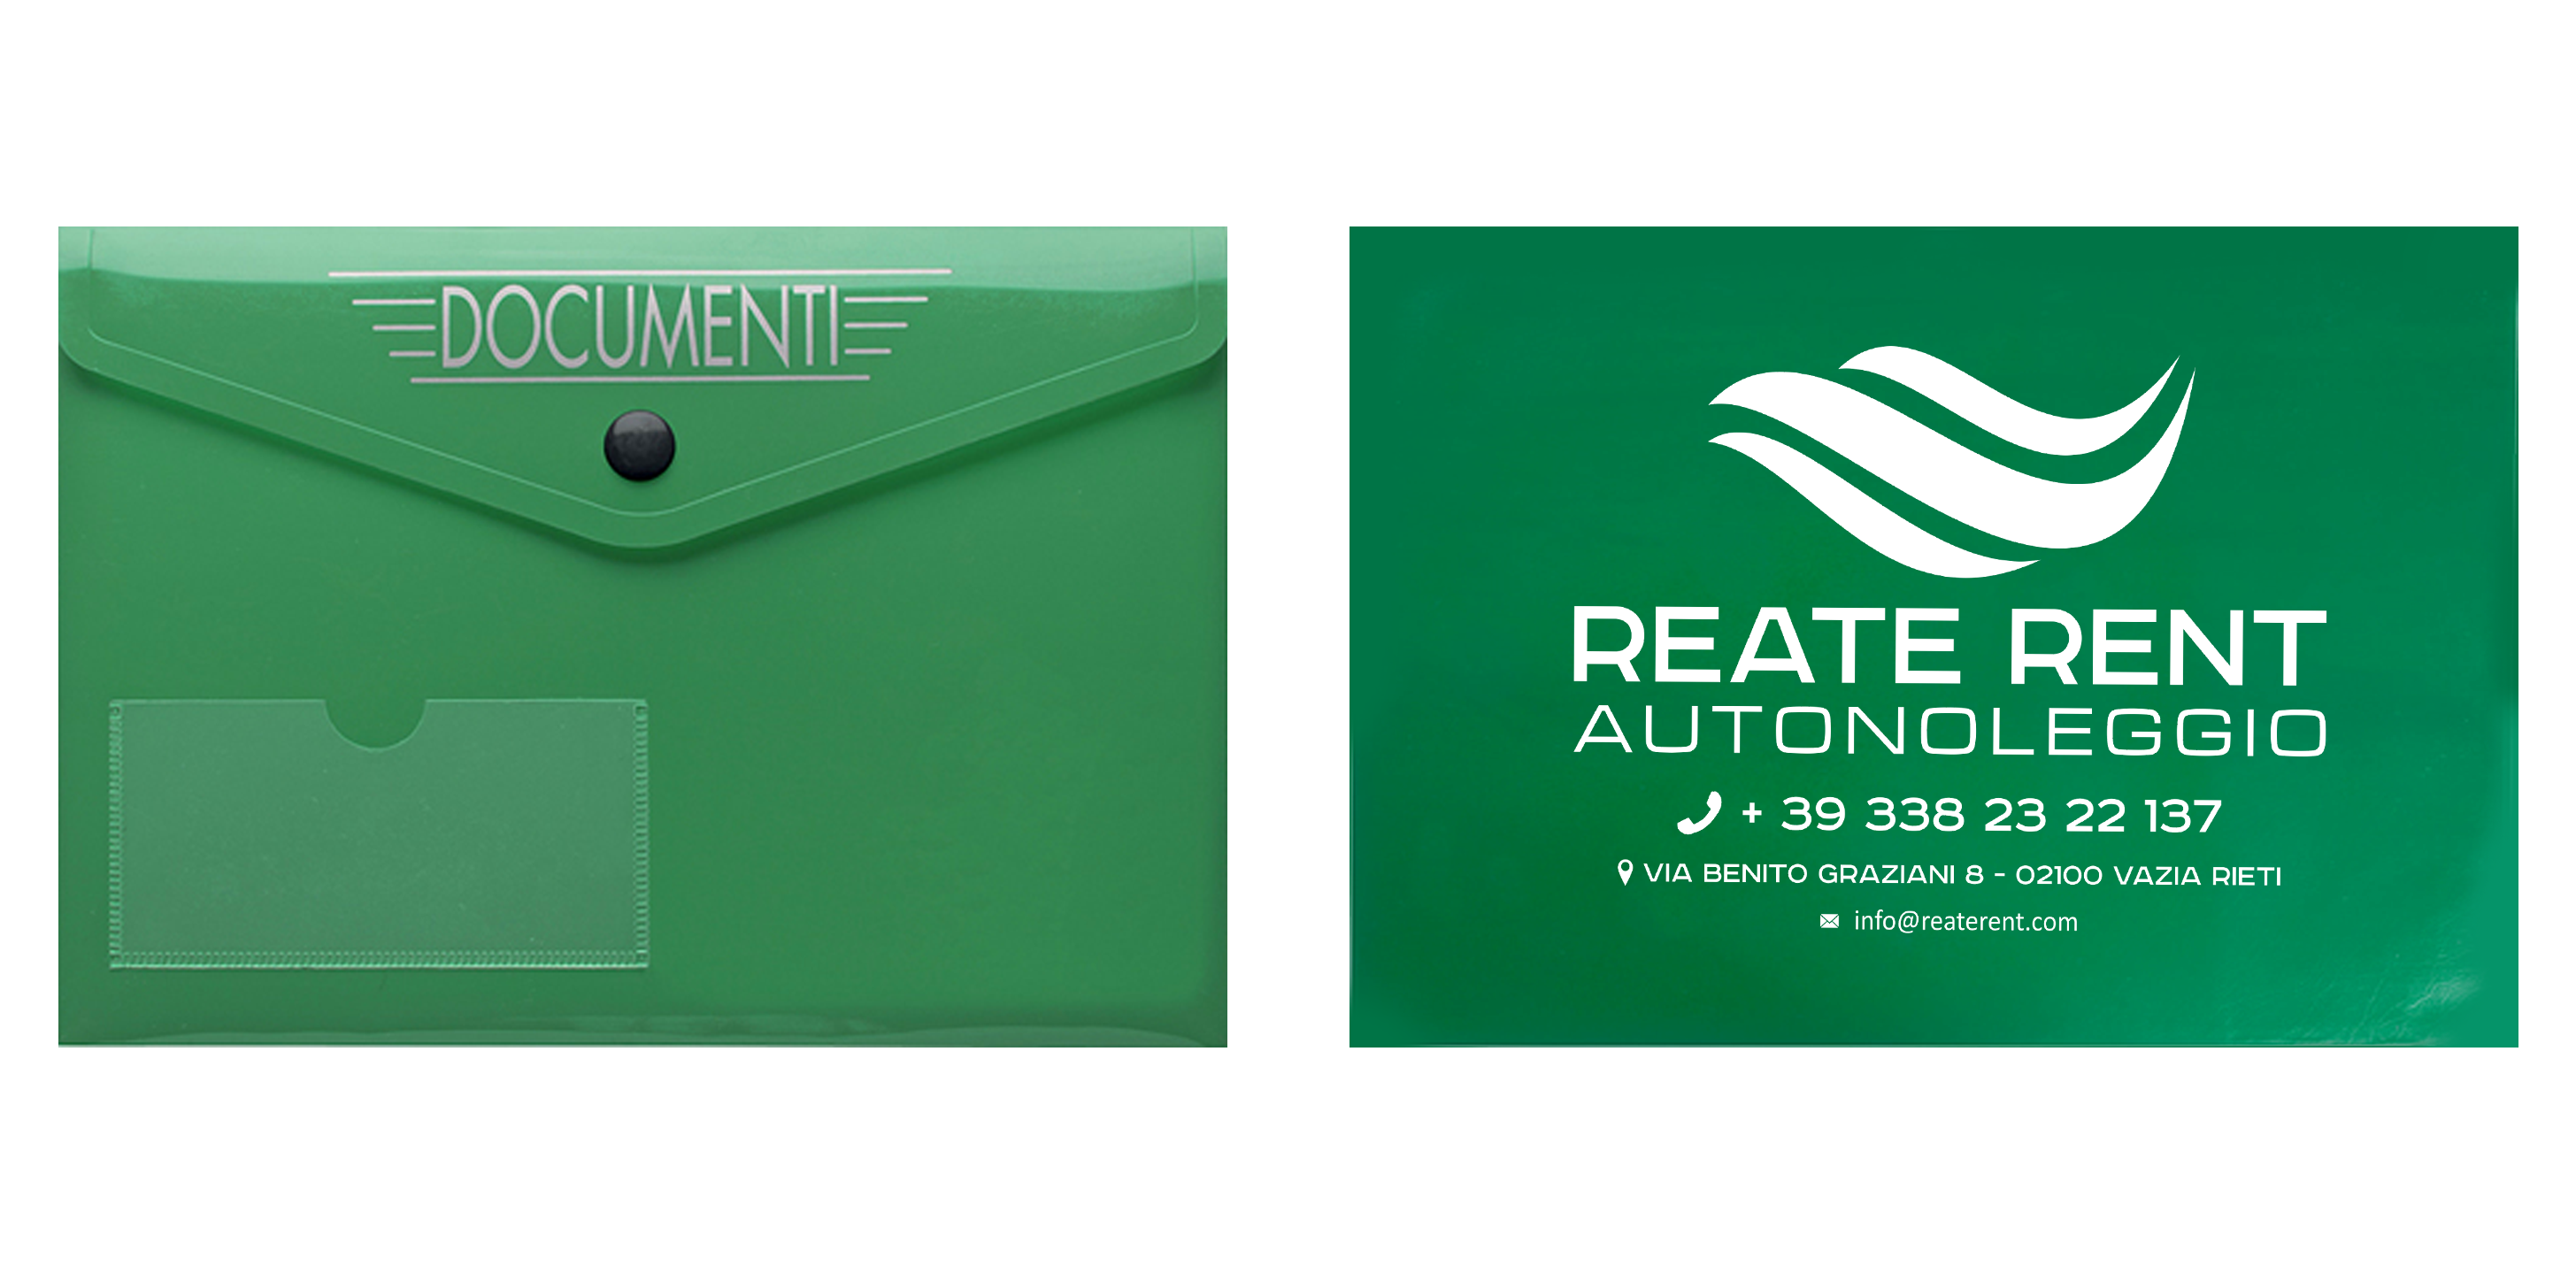 porta-documenti-reate-rent